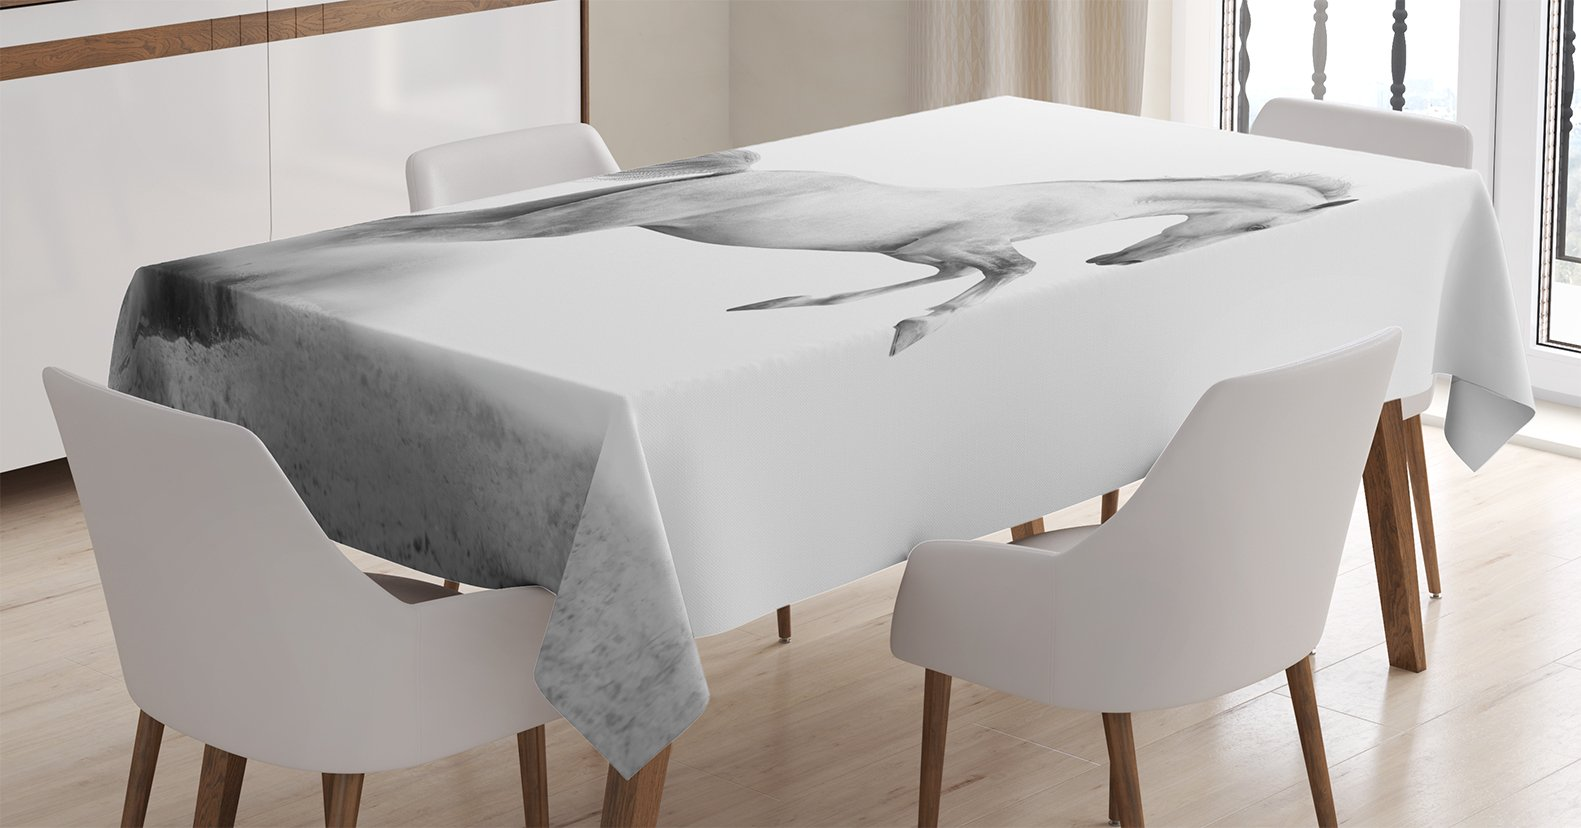 Ambesonne Animal Decor Tablecloth, Horse Power on The Sand Tropic Gulf Island National Seashore Florida Plants Landscape Art, Dining Room Kitchen Rectangular Table Cover, 60 X 90 inches, Grey